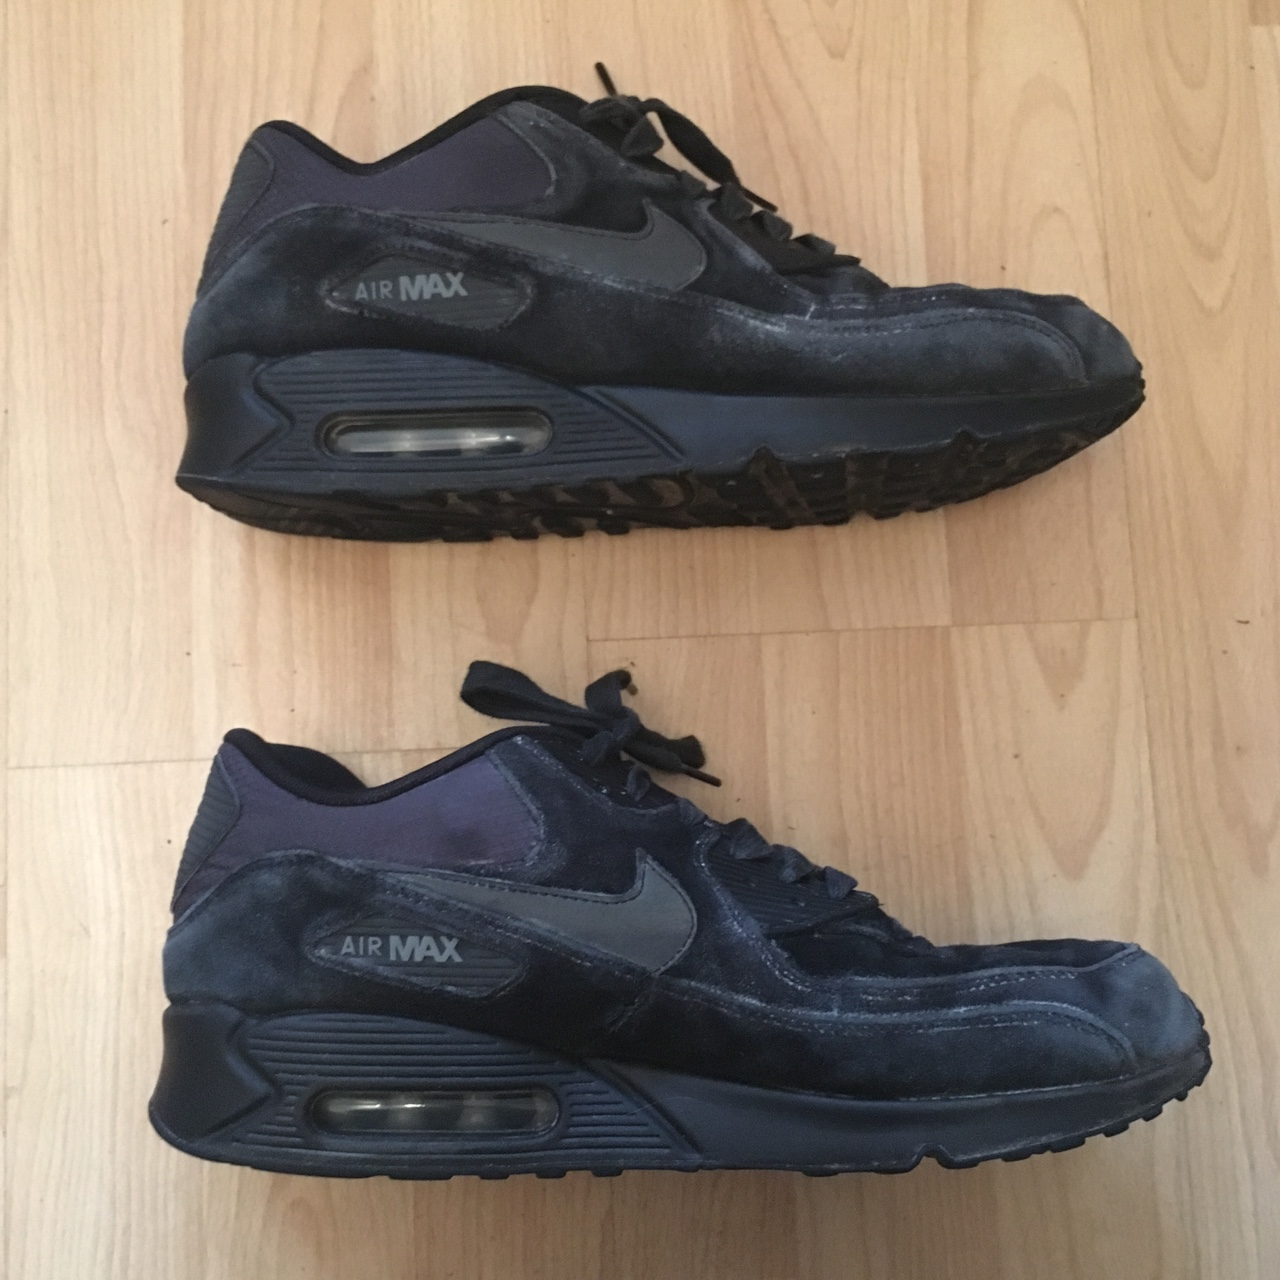 All black 1 Air Nike reflective Depop Suede Max 3M with H2bDE9YeWI